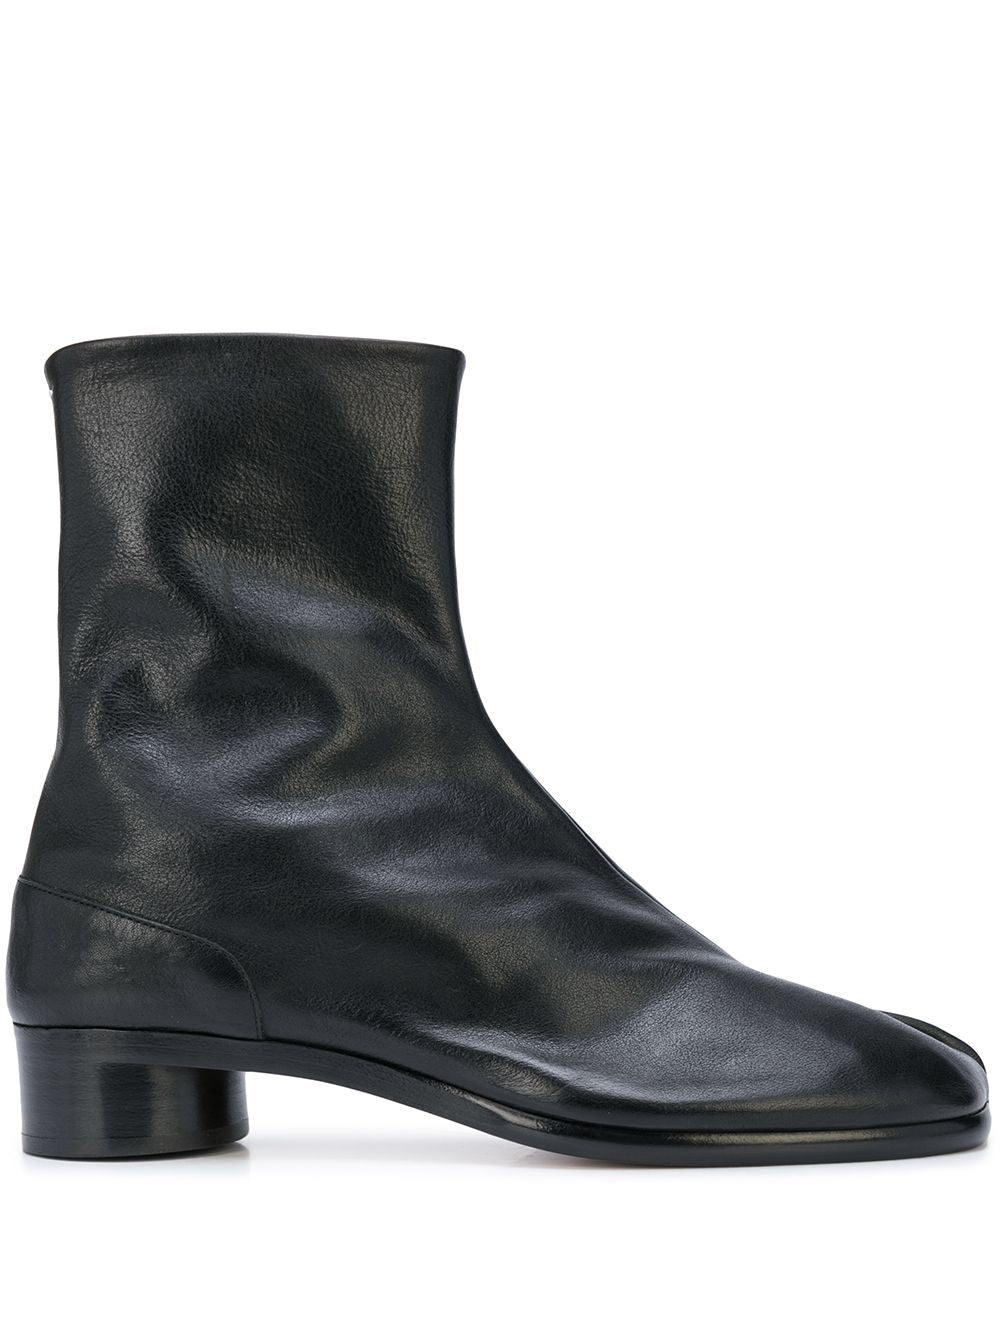 MAISON MARGIELA MEN TABI LOW HEEL BOOTS